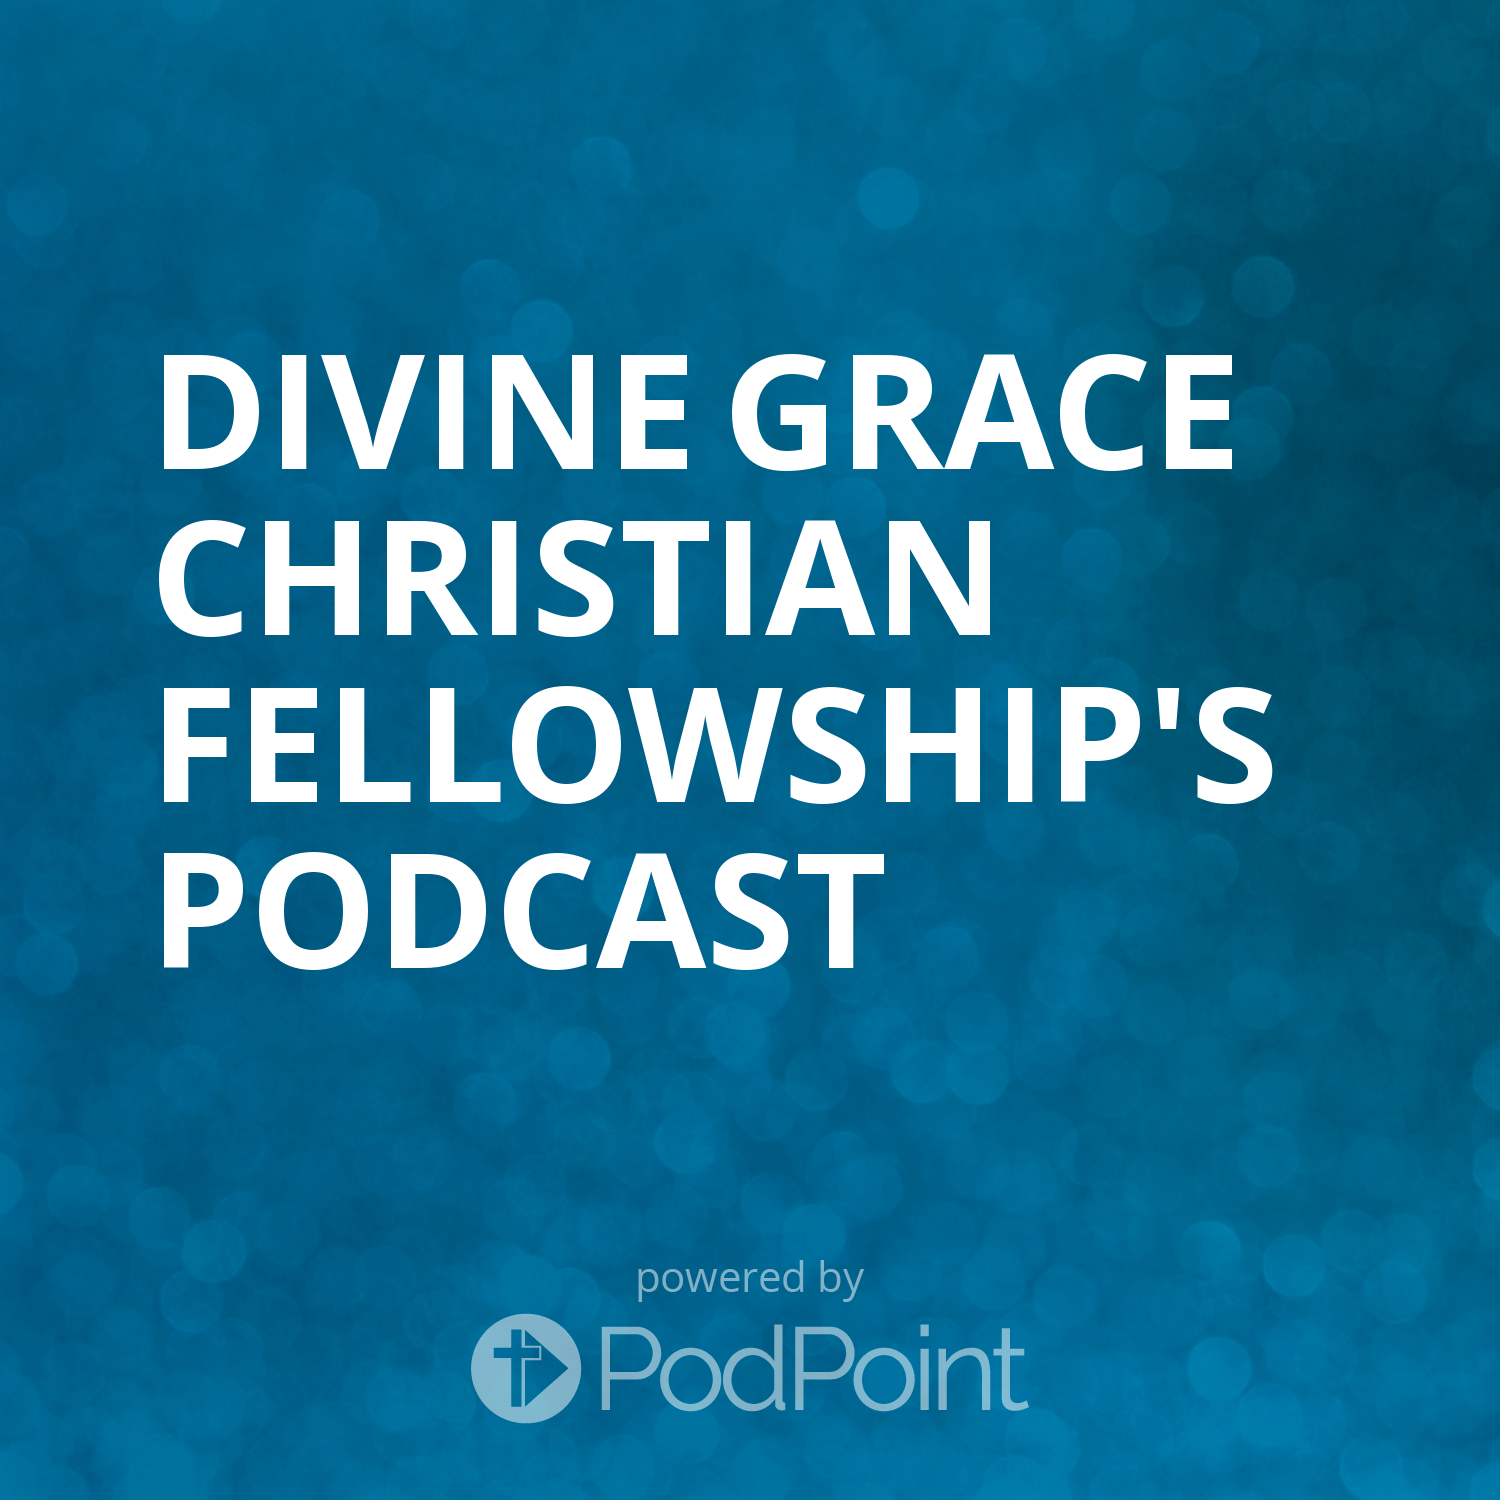 Divine Grace Christian Fellowship's Podcast